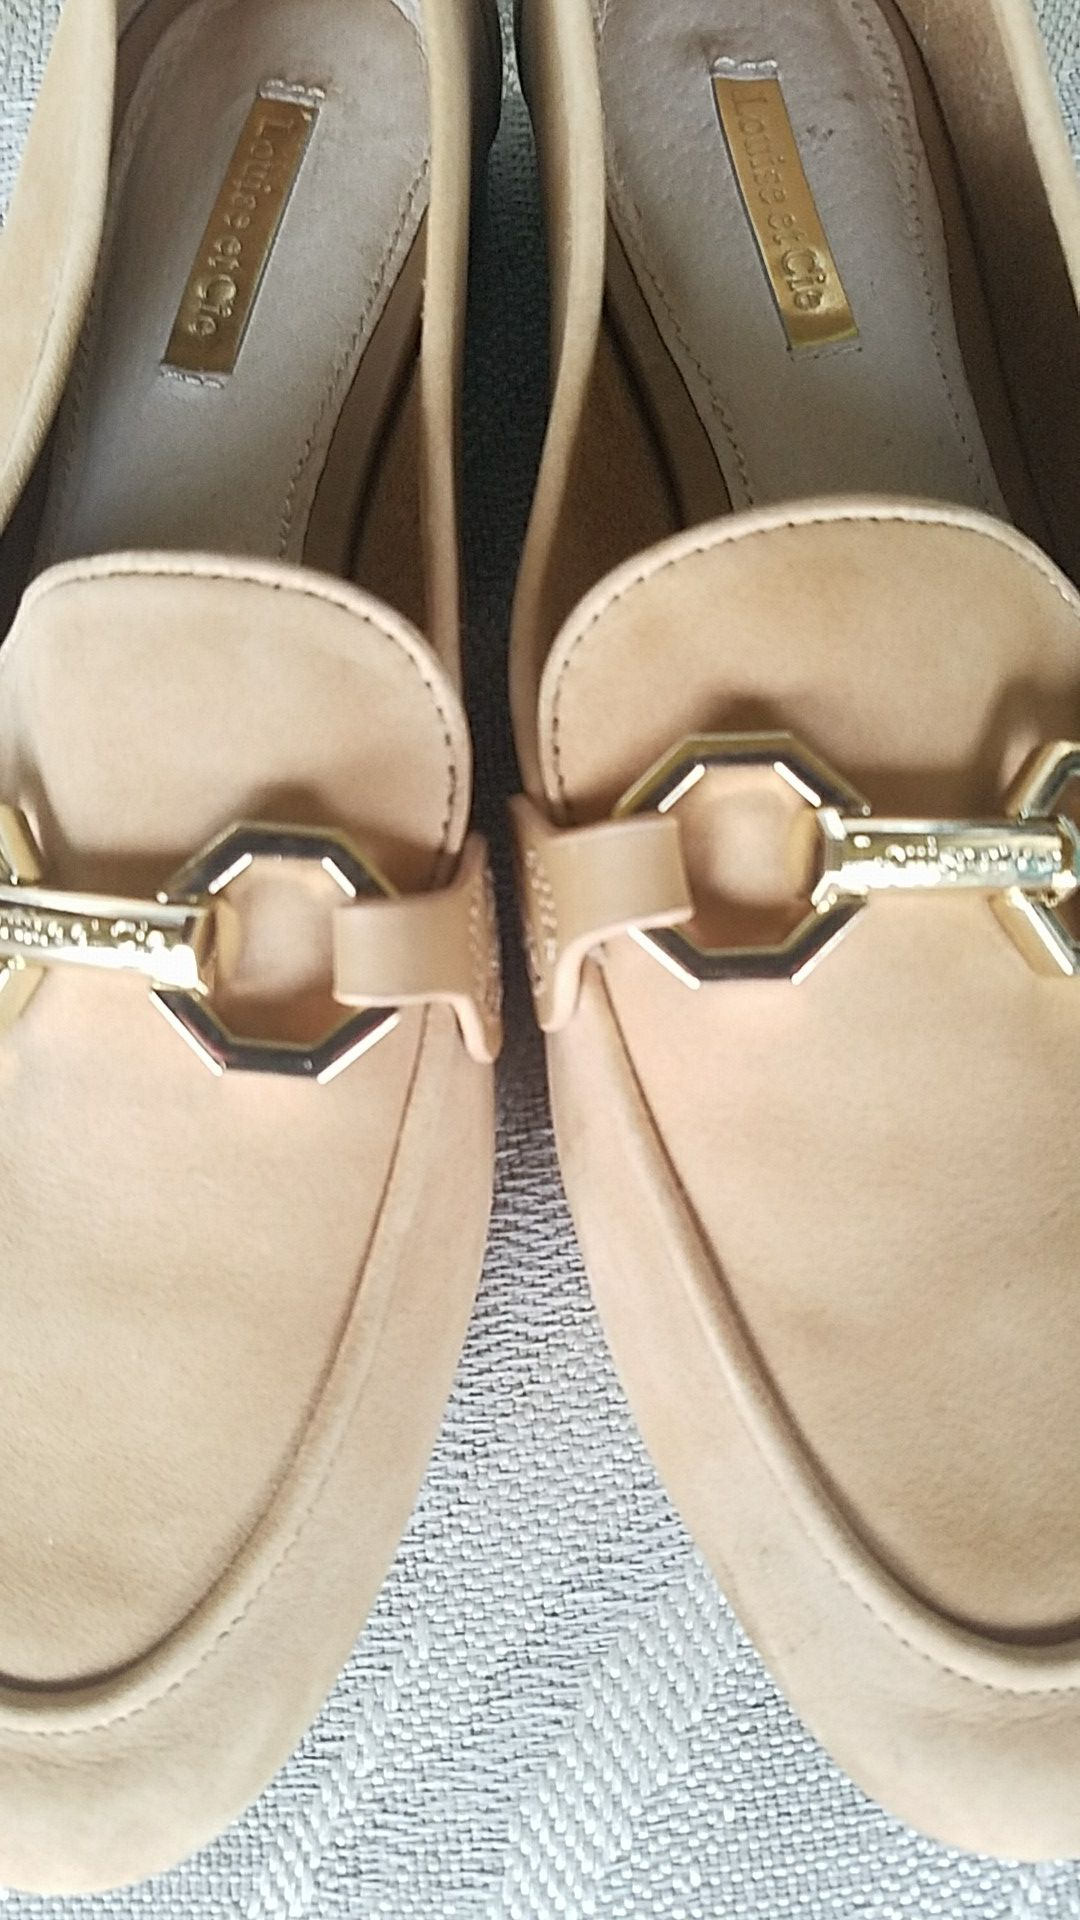 Louise etc Cie size 9 and 1/2